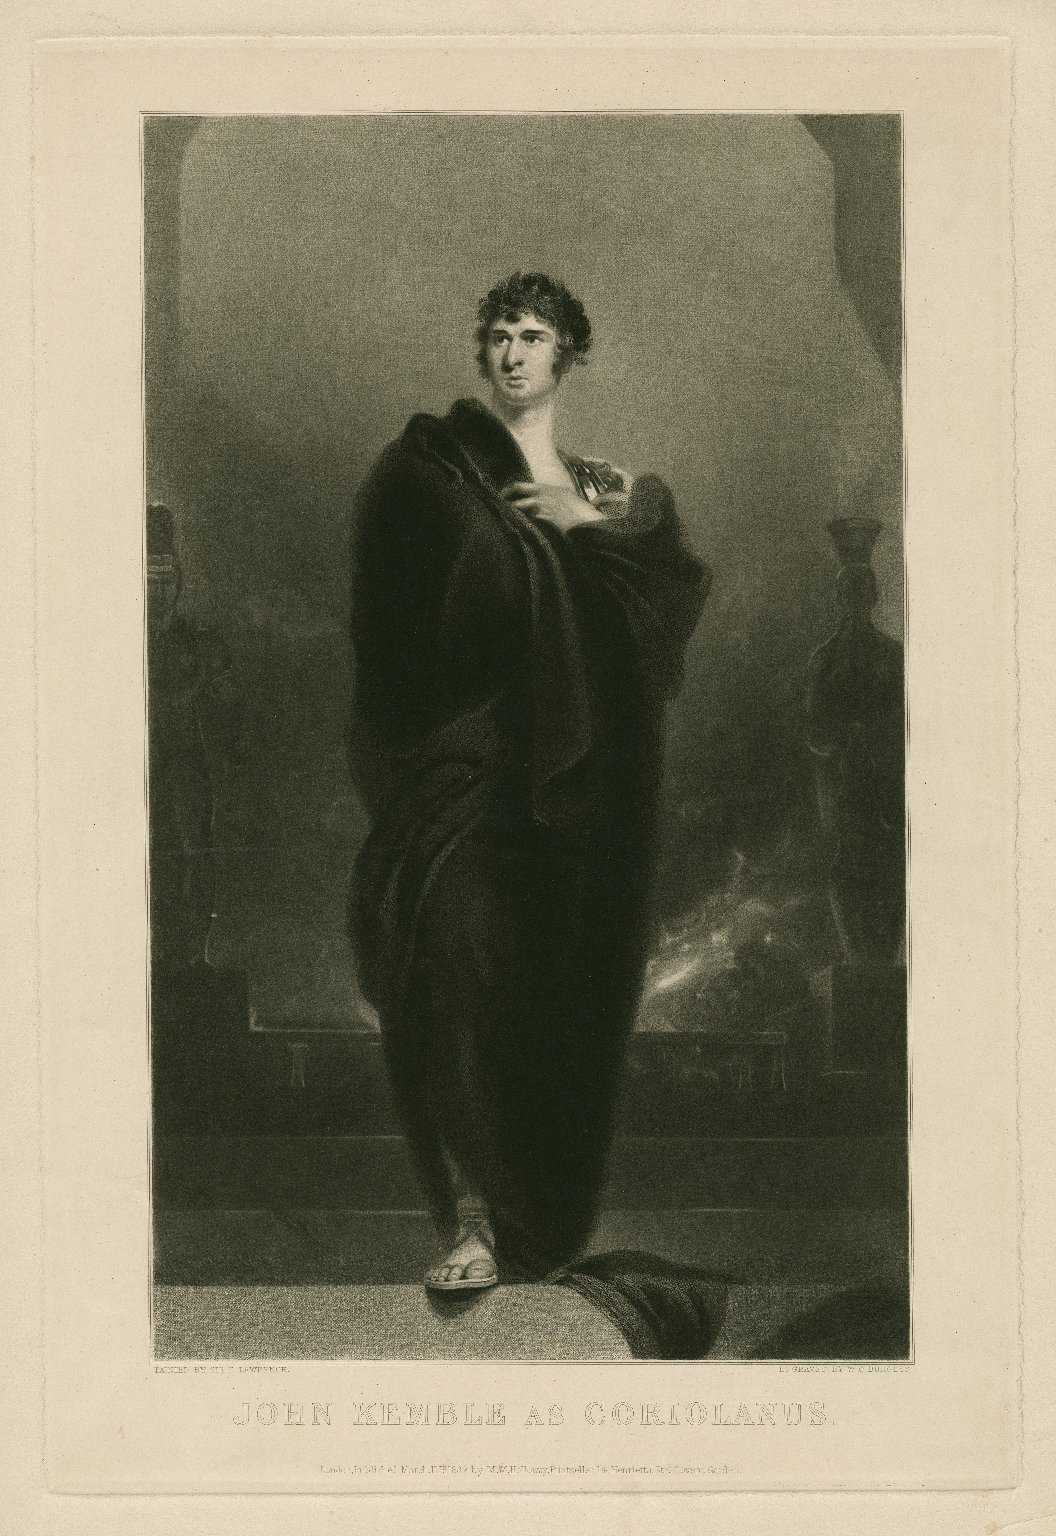 John Kemble as Coriolanus [graphic] : [in Shakespeare's play of that name] / painted by Sir T. Lawrence ; engraved by W.O. Burgess.